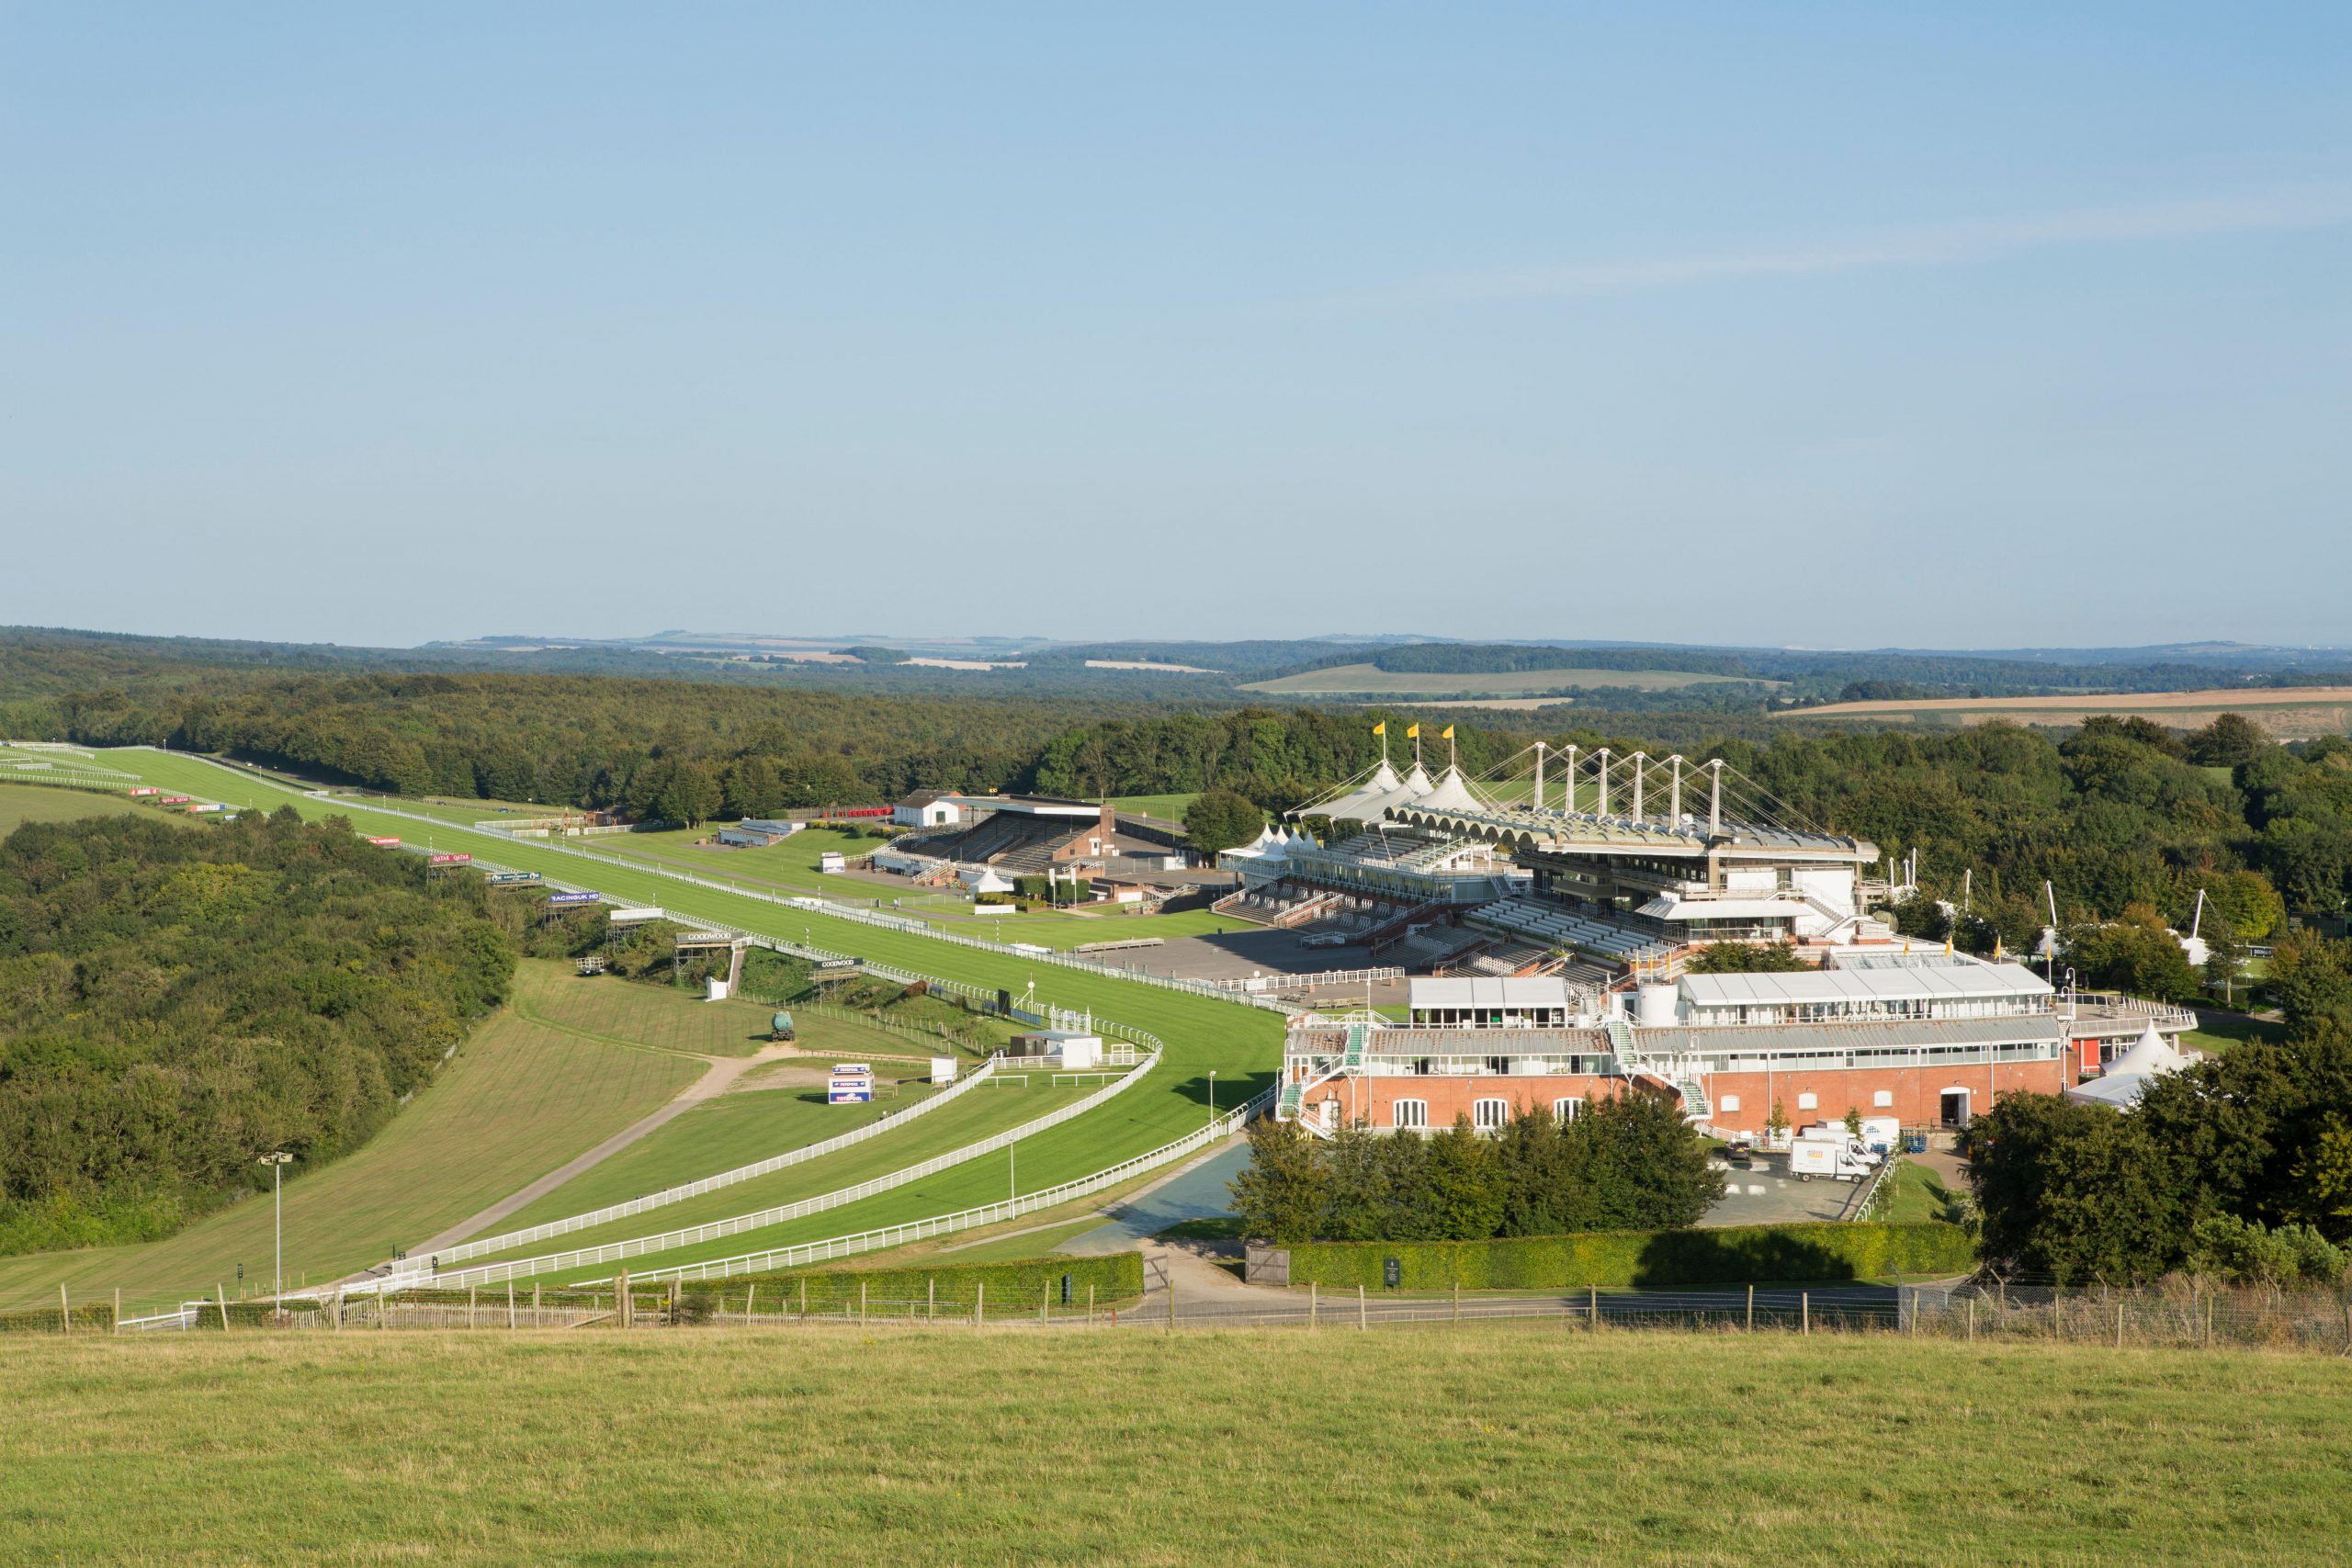 Goodwood racecourse in the South Downs West Sussex. View of the empty grandstands on a summers day.